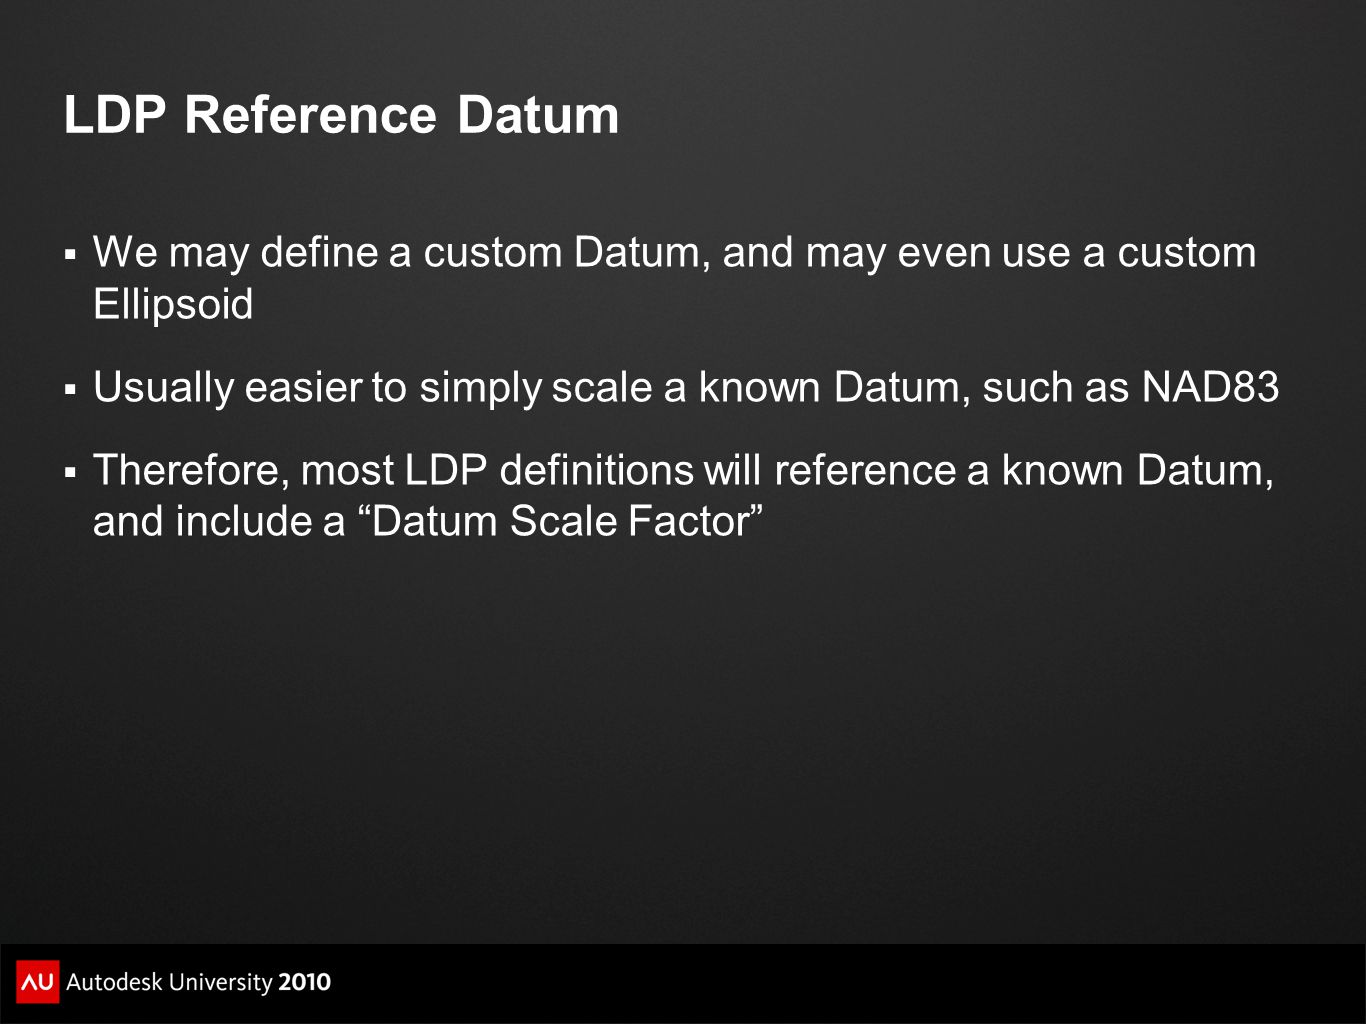 LDP Reference Datum We may define a custom Datum, and may even use a custom Ellipsoid. Usually easier to simply scale a known Datum, such as NAD83.